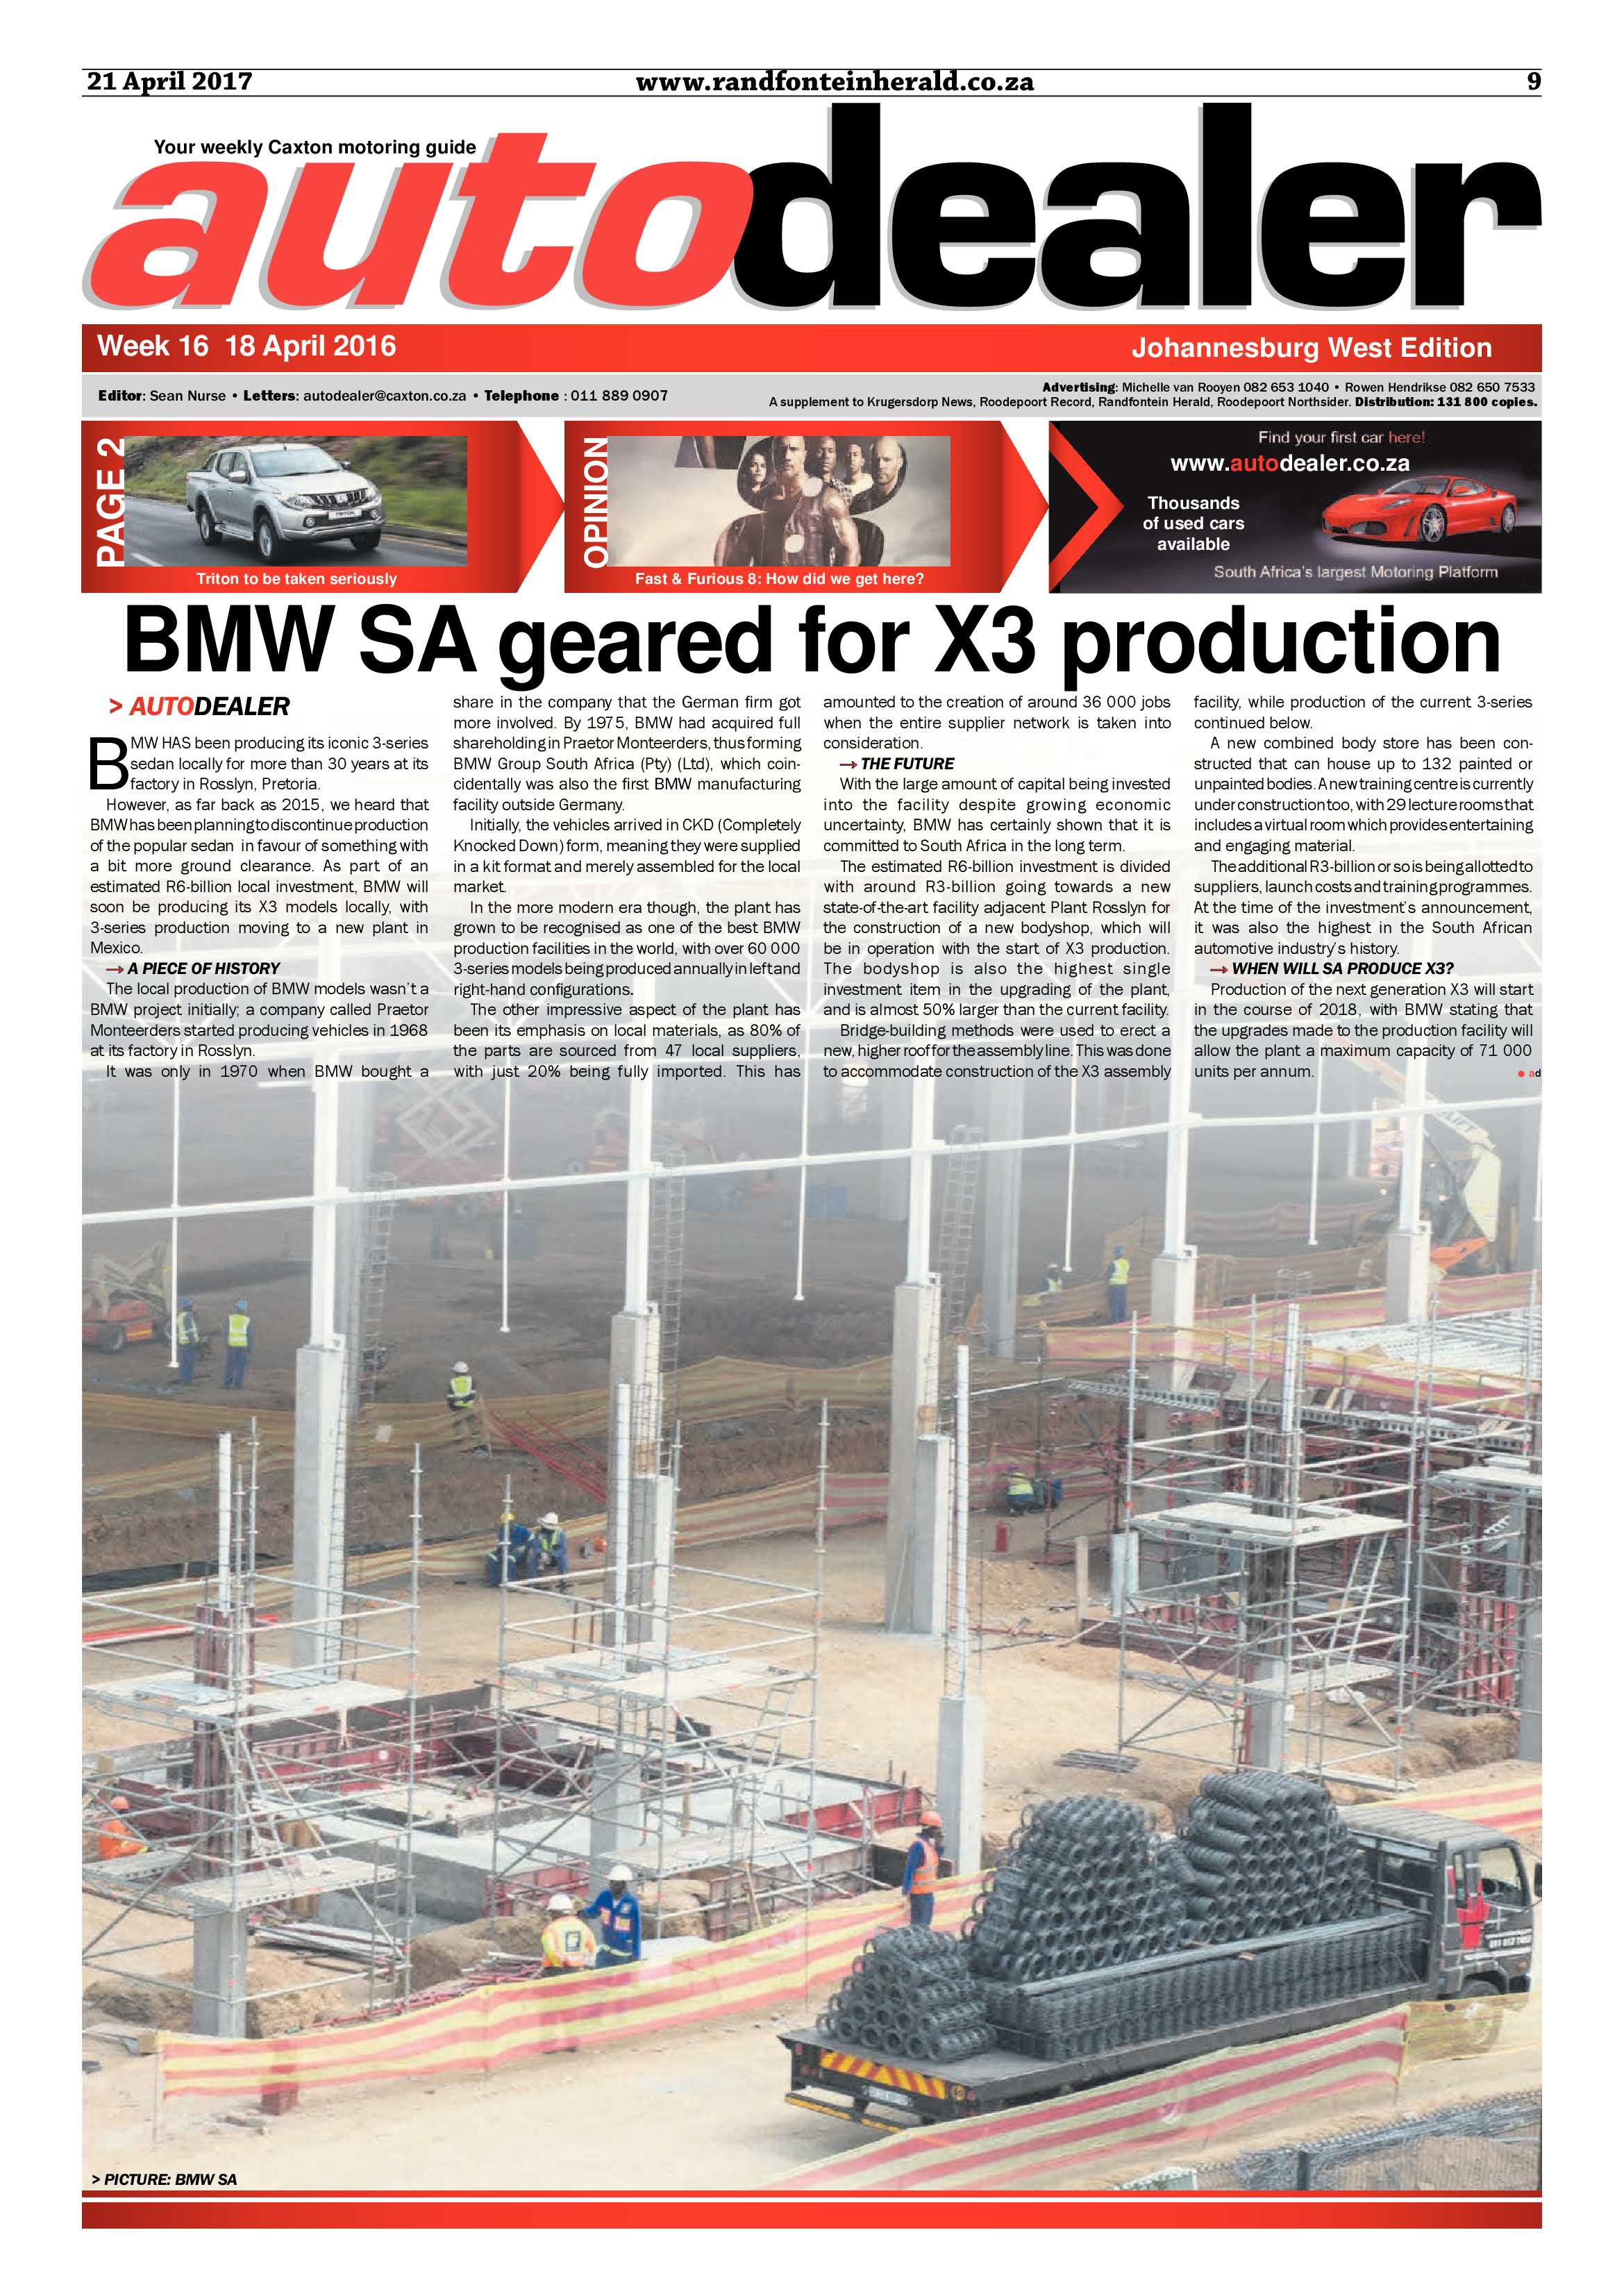 randfontein-herald-21-april-2017-epapers-page-9